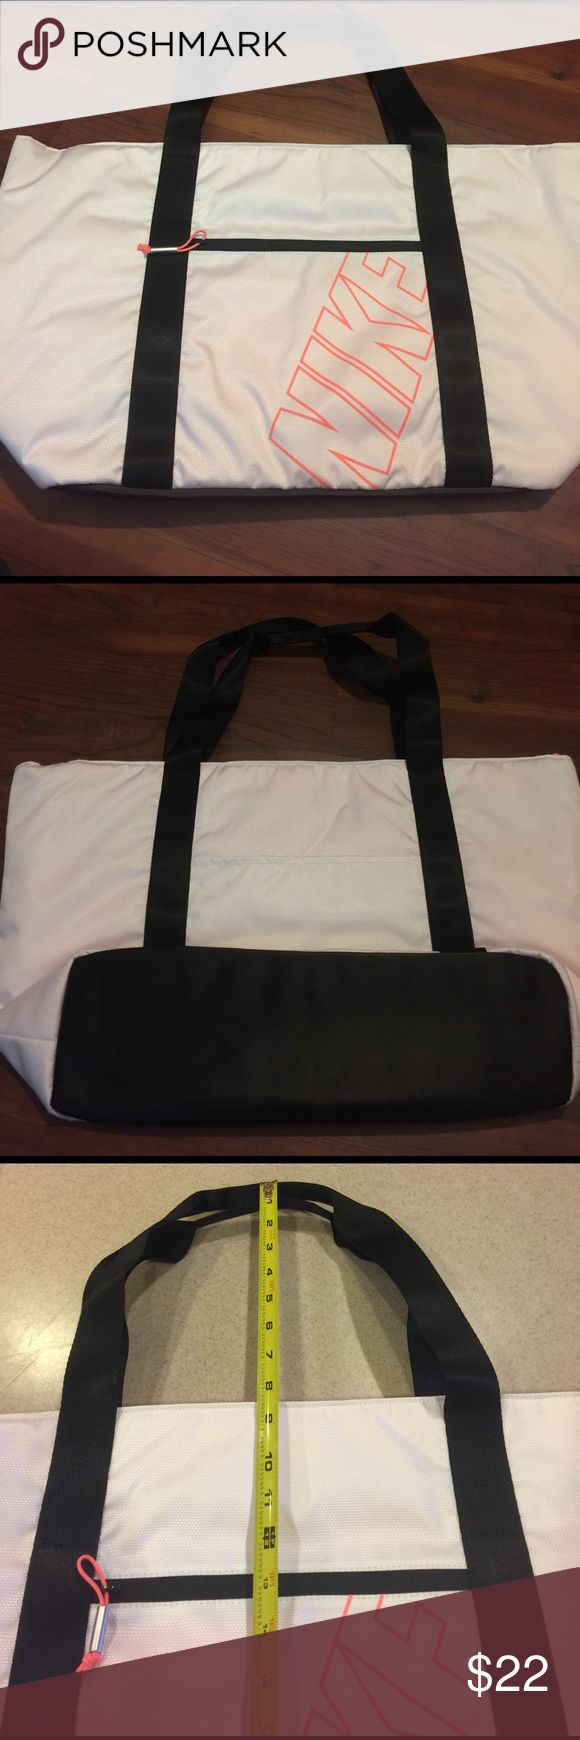 Nike Large Tote Bag Large White Nike Tote Bag . Has zippered pocket on inside . Small Zippered pocket on outside.  22 wide and 13.5 tall Nike Bags Totes